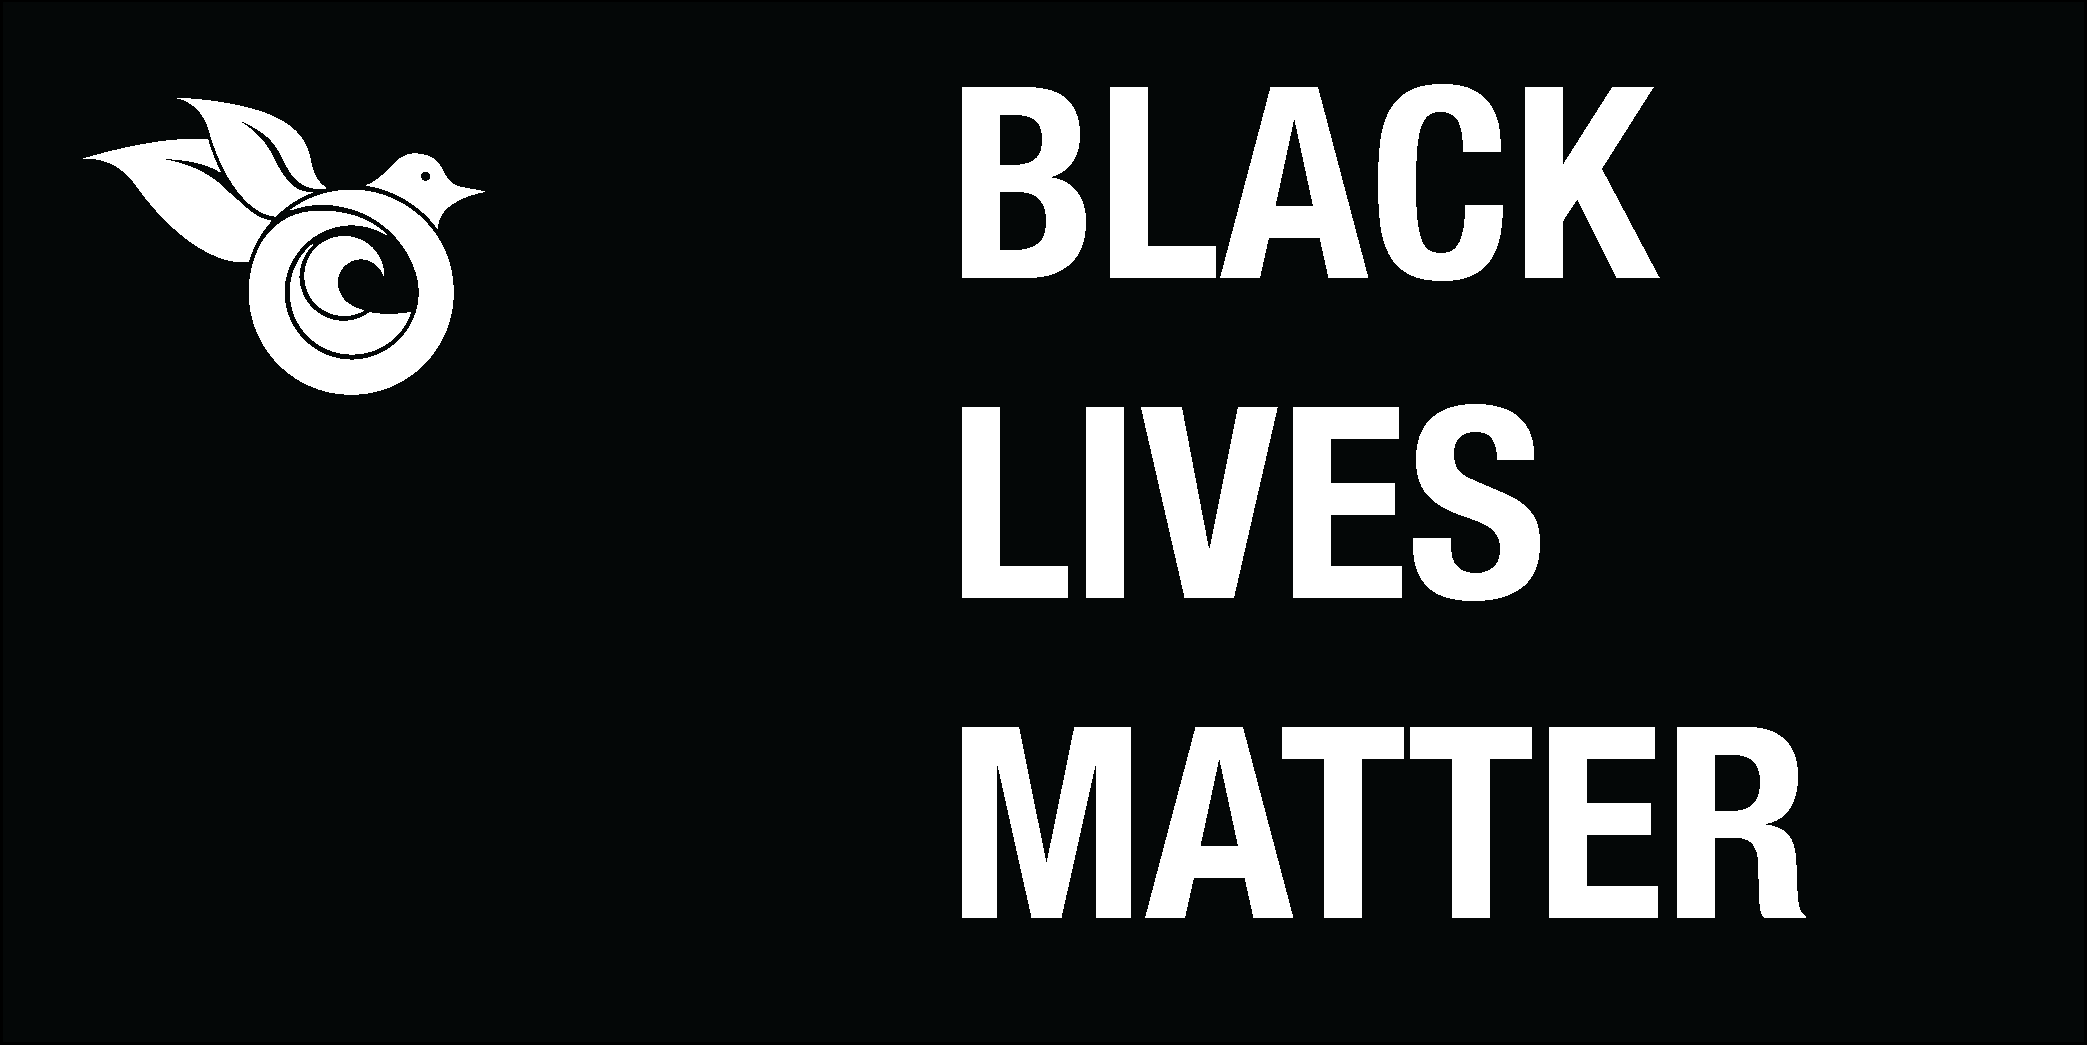 Our support for Black Lives Matter